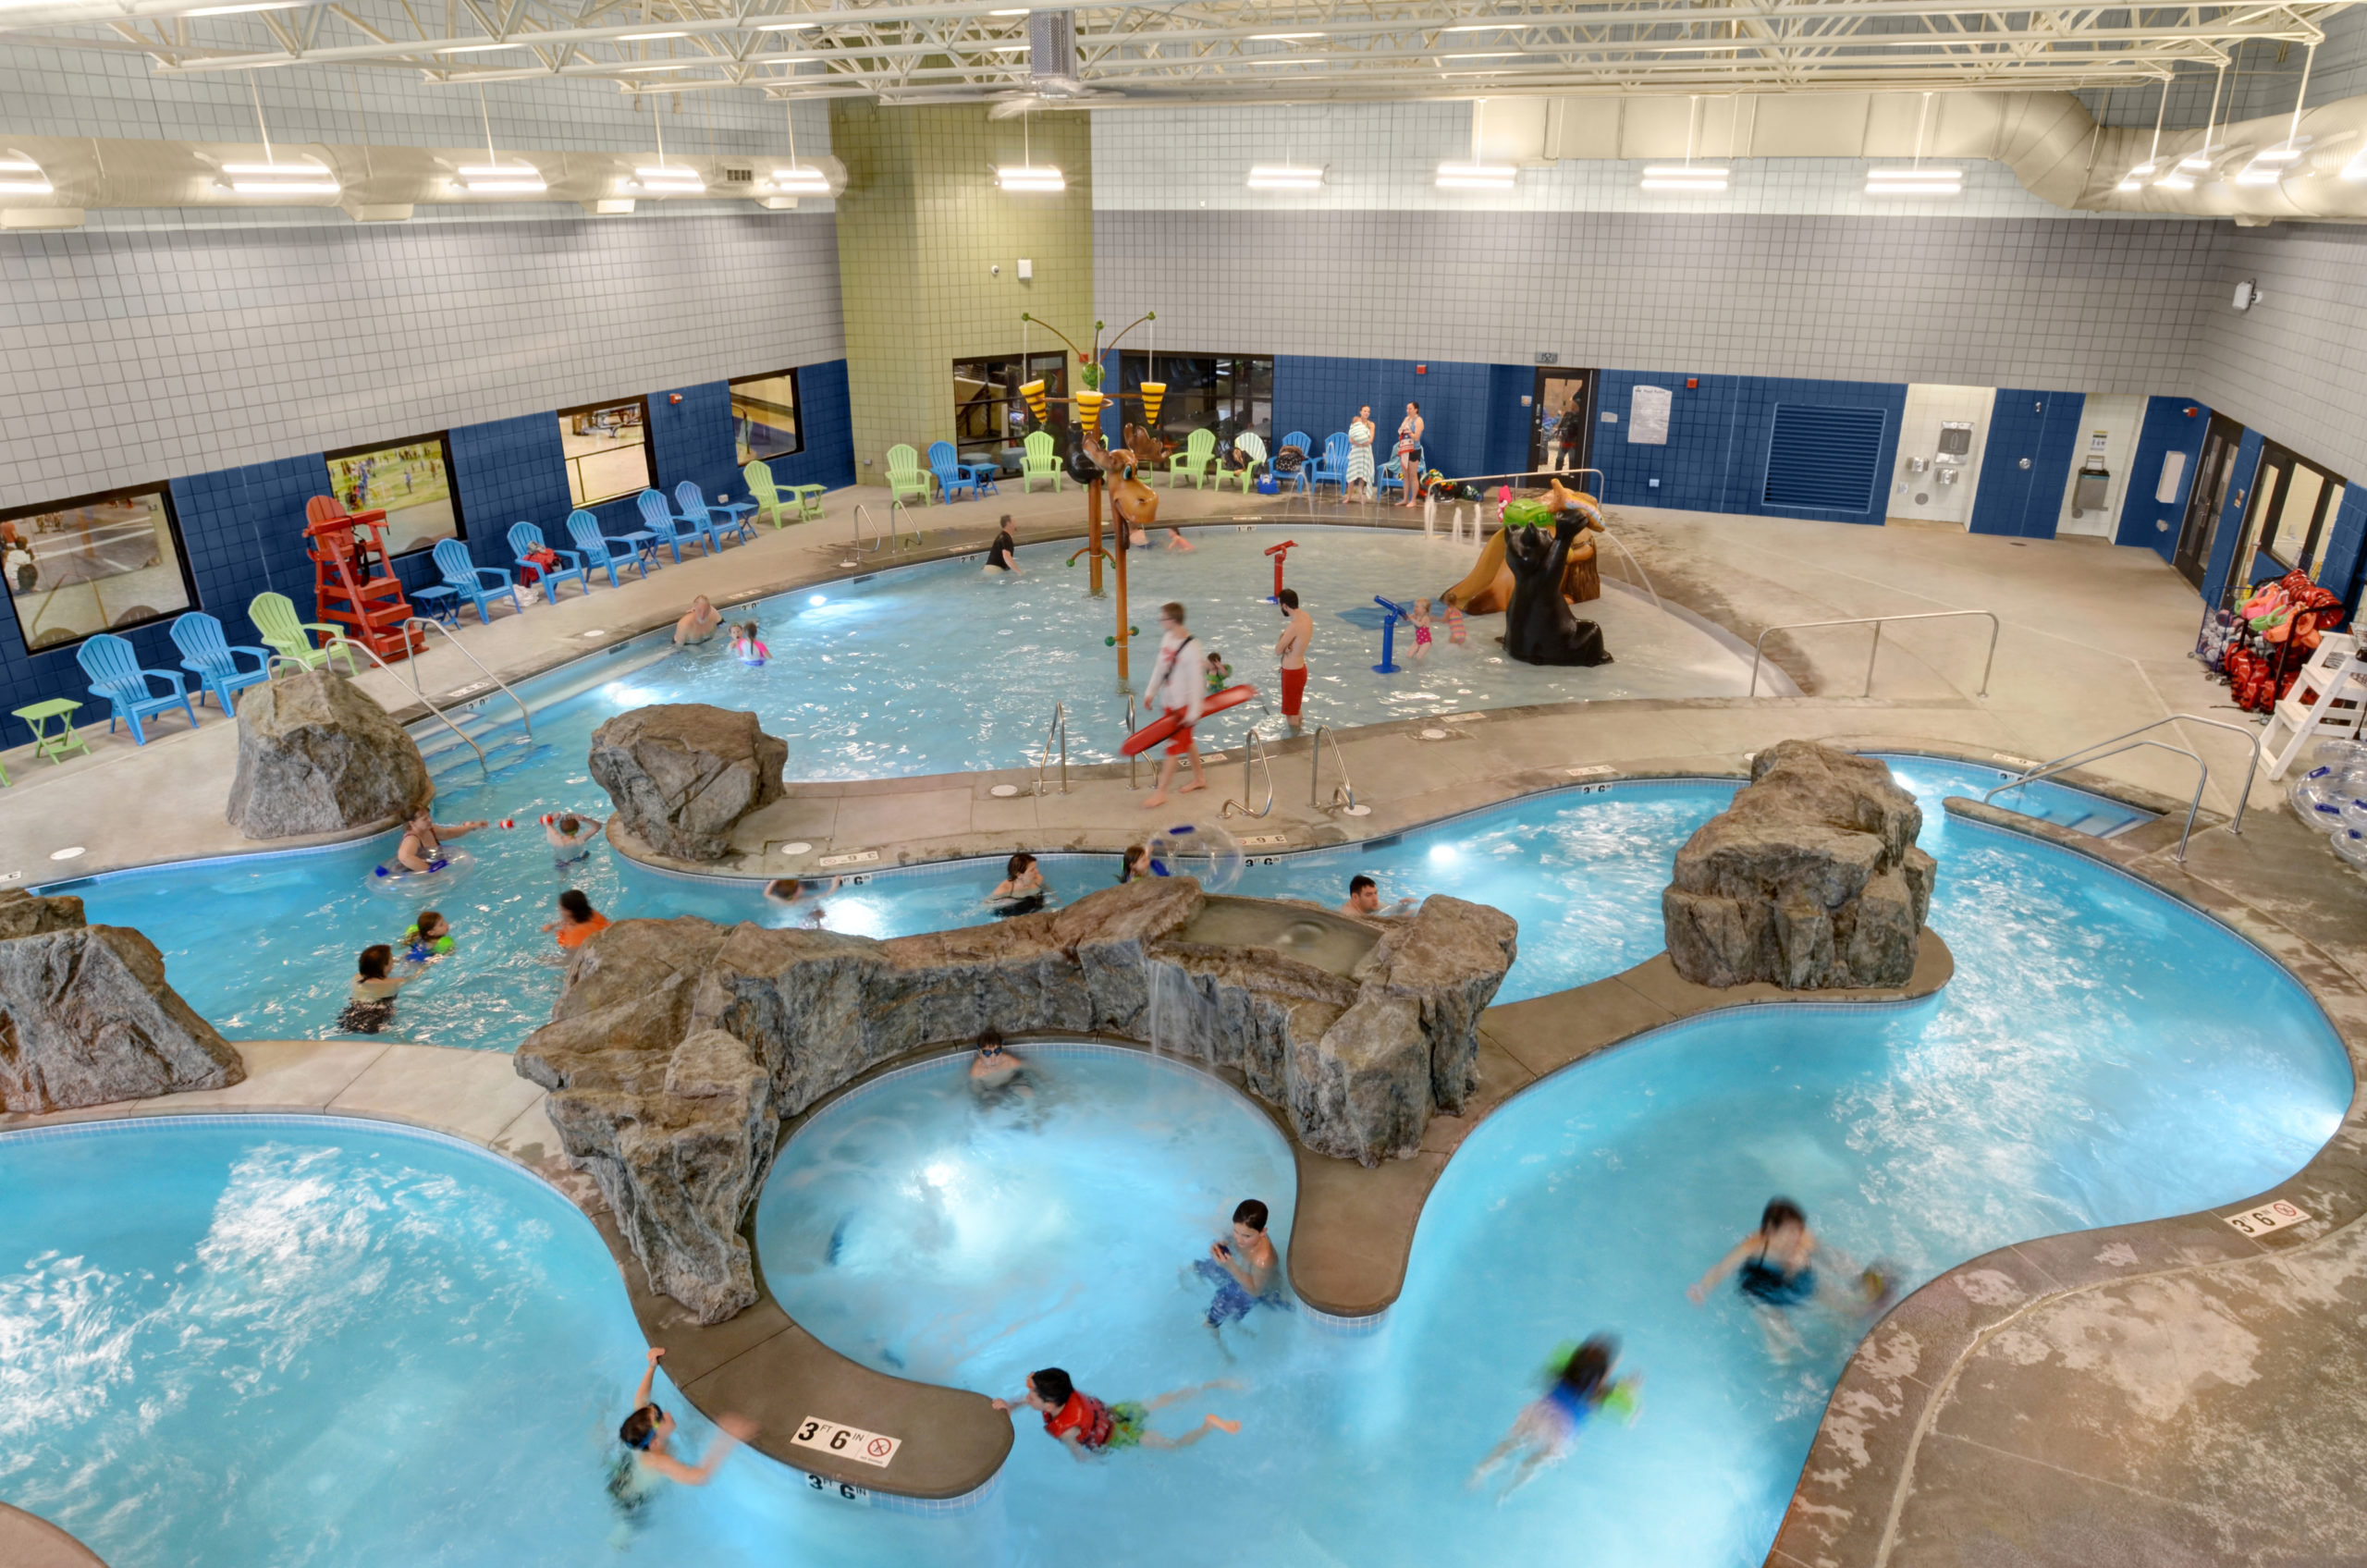 Estes Valley Community Center pool with lazy river